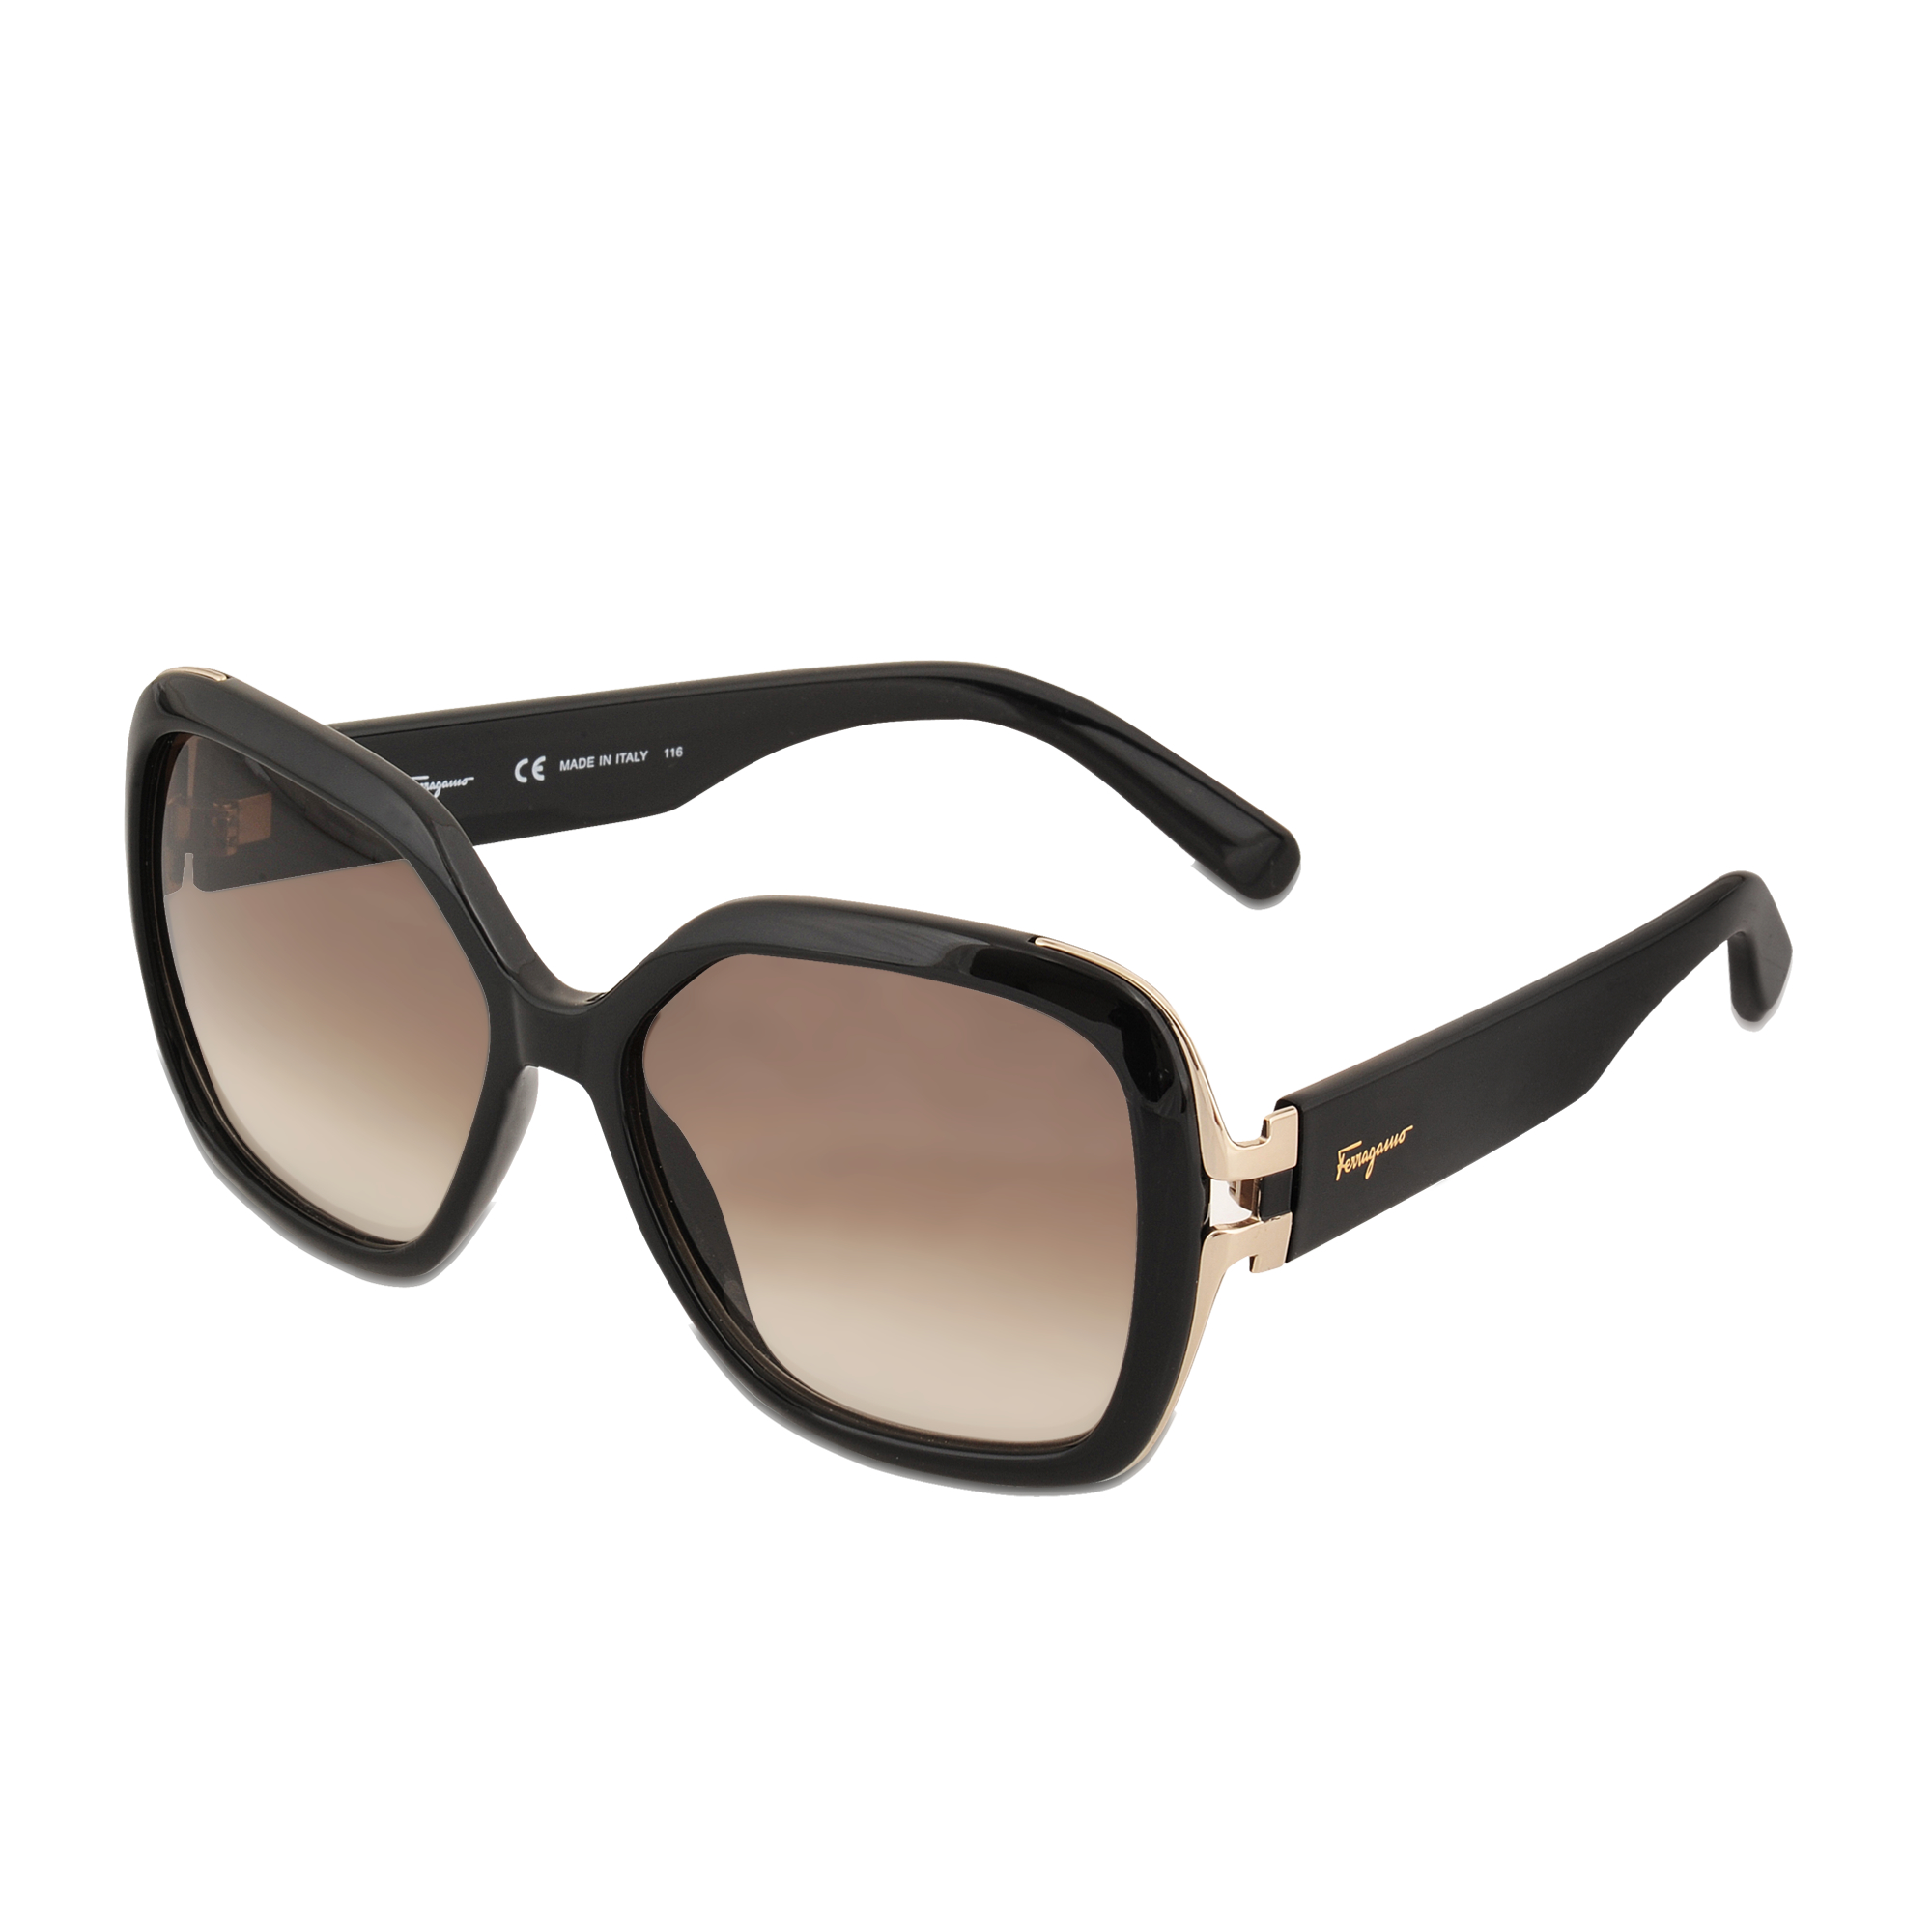 Ferragamo Synthetic Sf781s Sunglasses in Grey